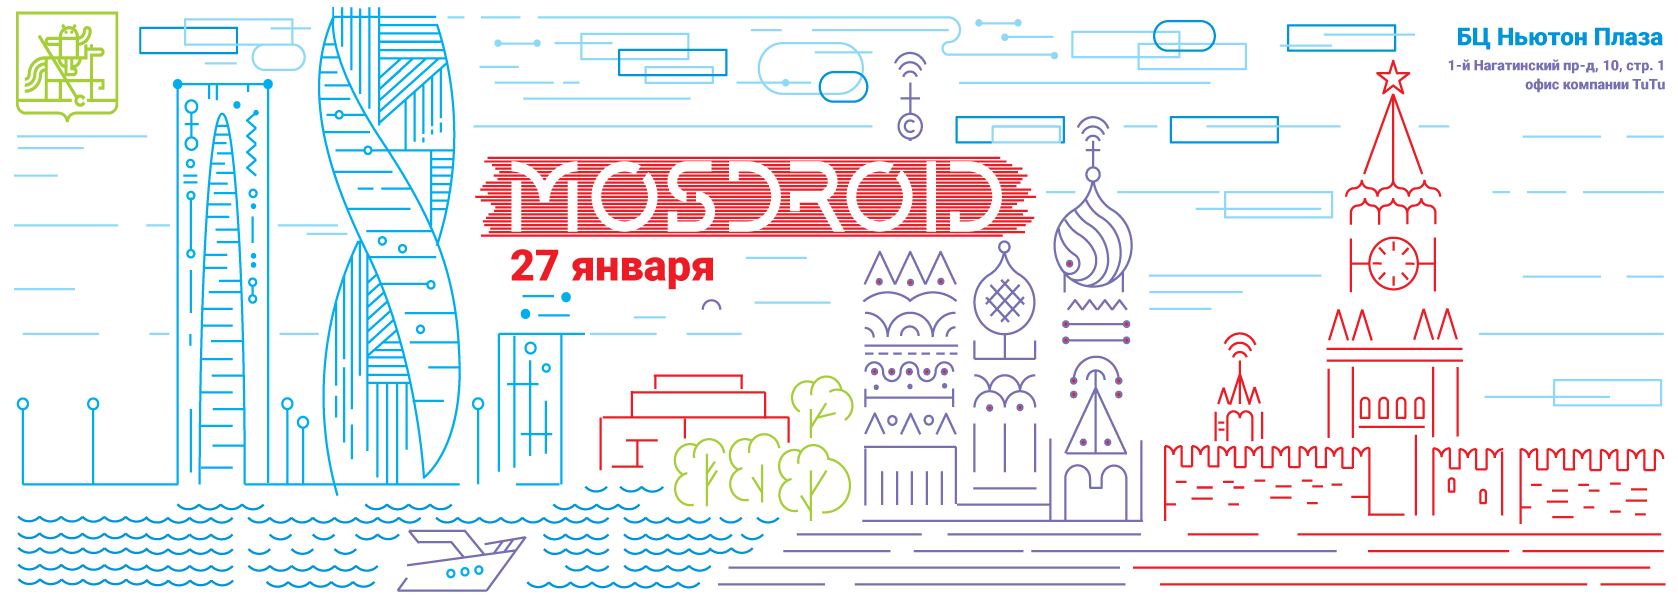 Past Events | MOSDROID (Moscow, Russia) | Meetup